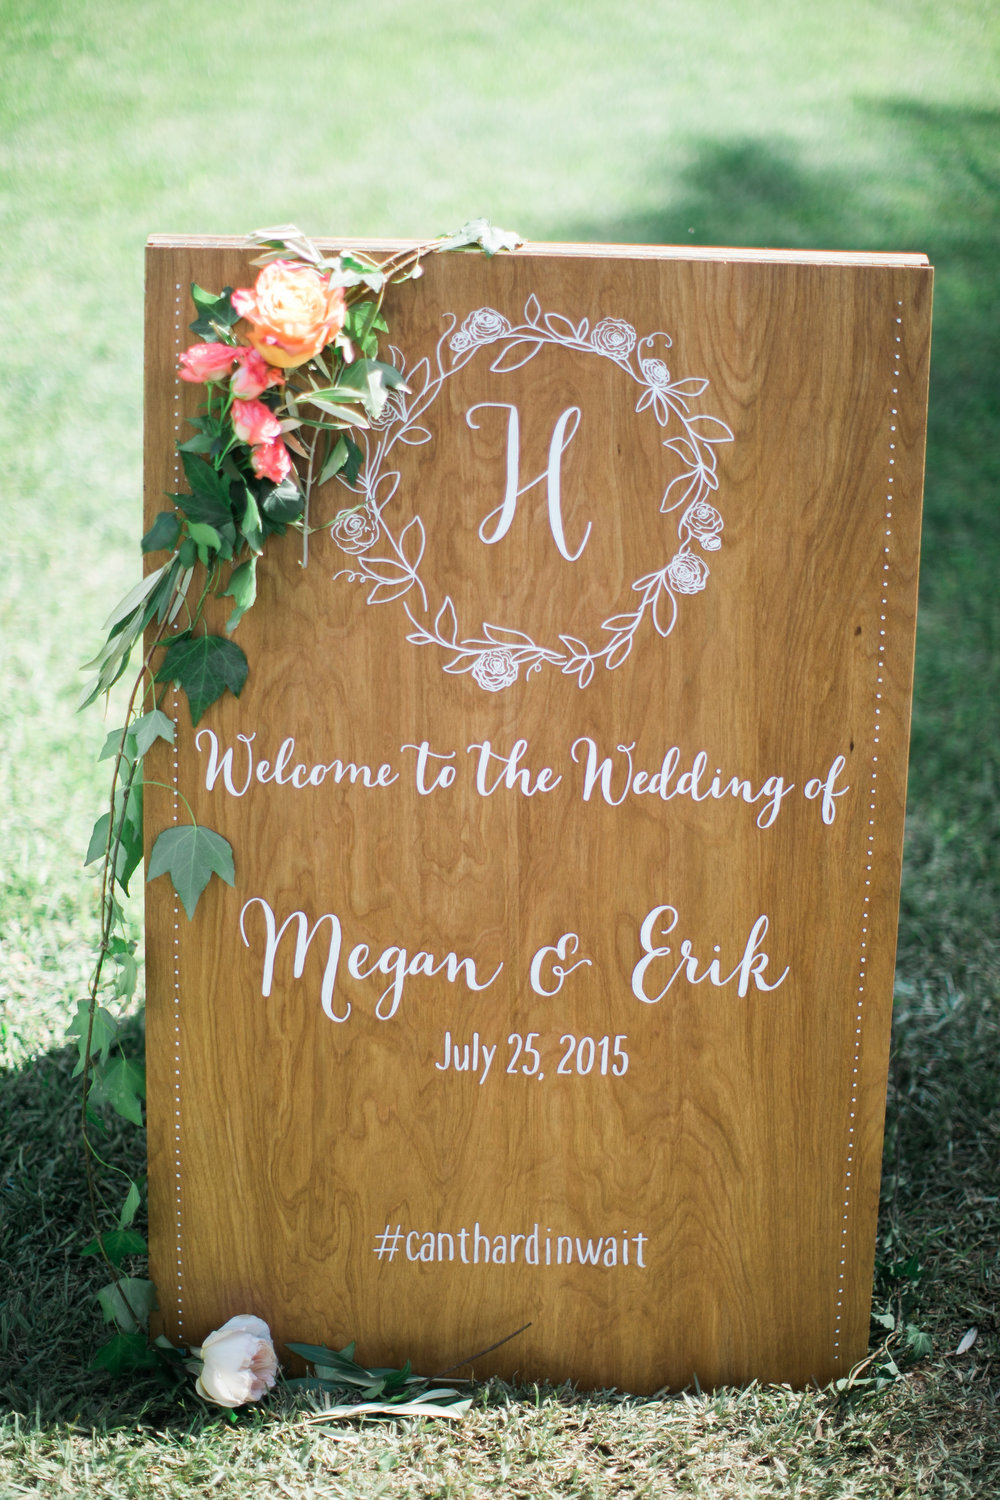 Wedding sign | Maui, Hawaii wedding | Joanna Tano Photography